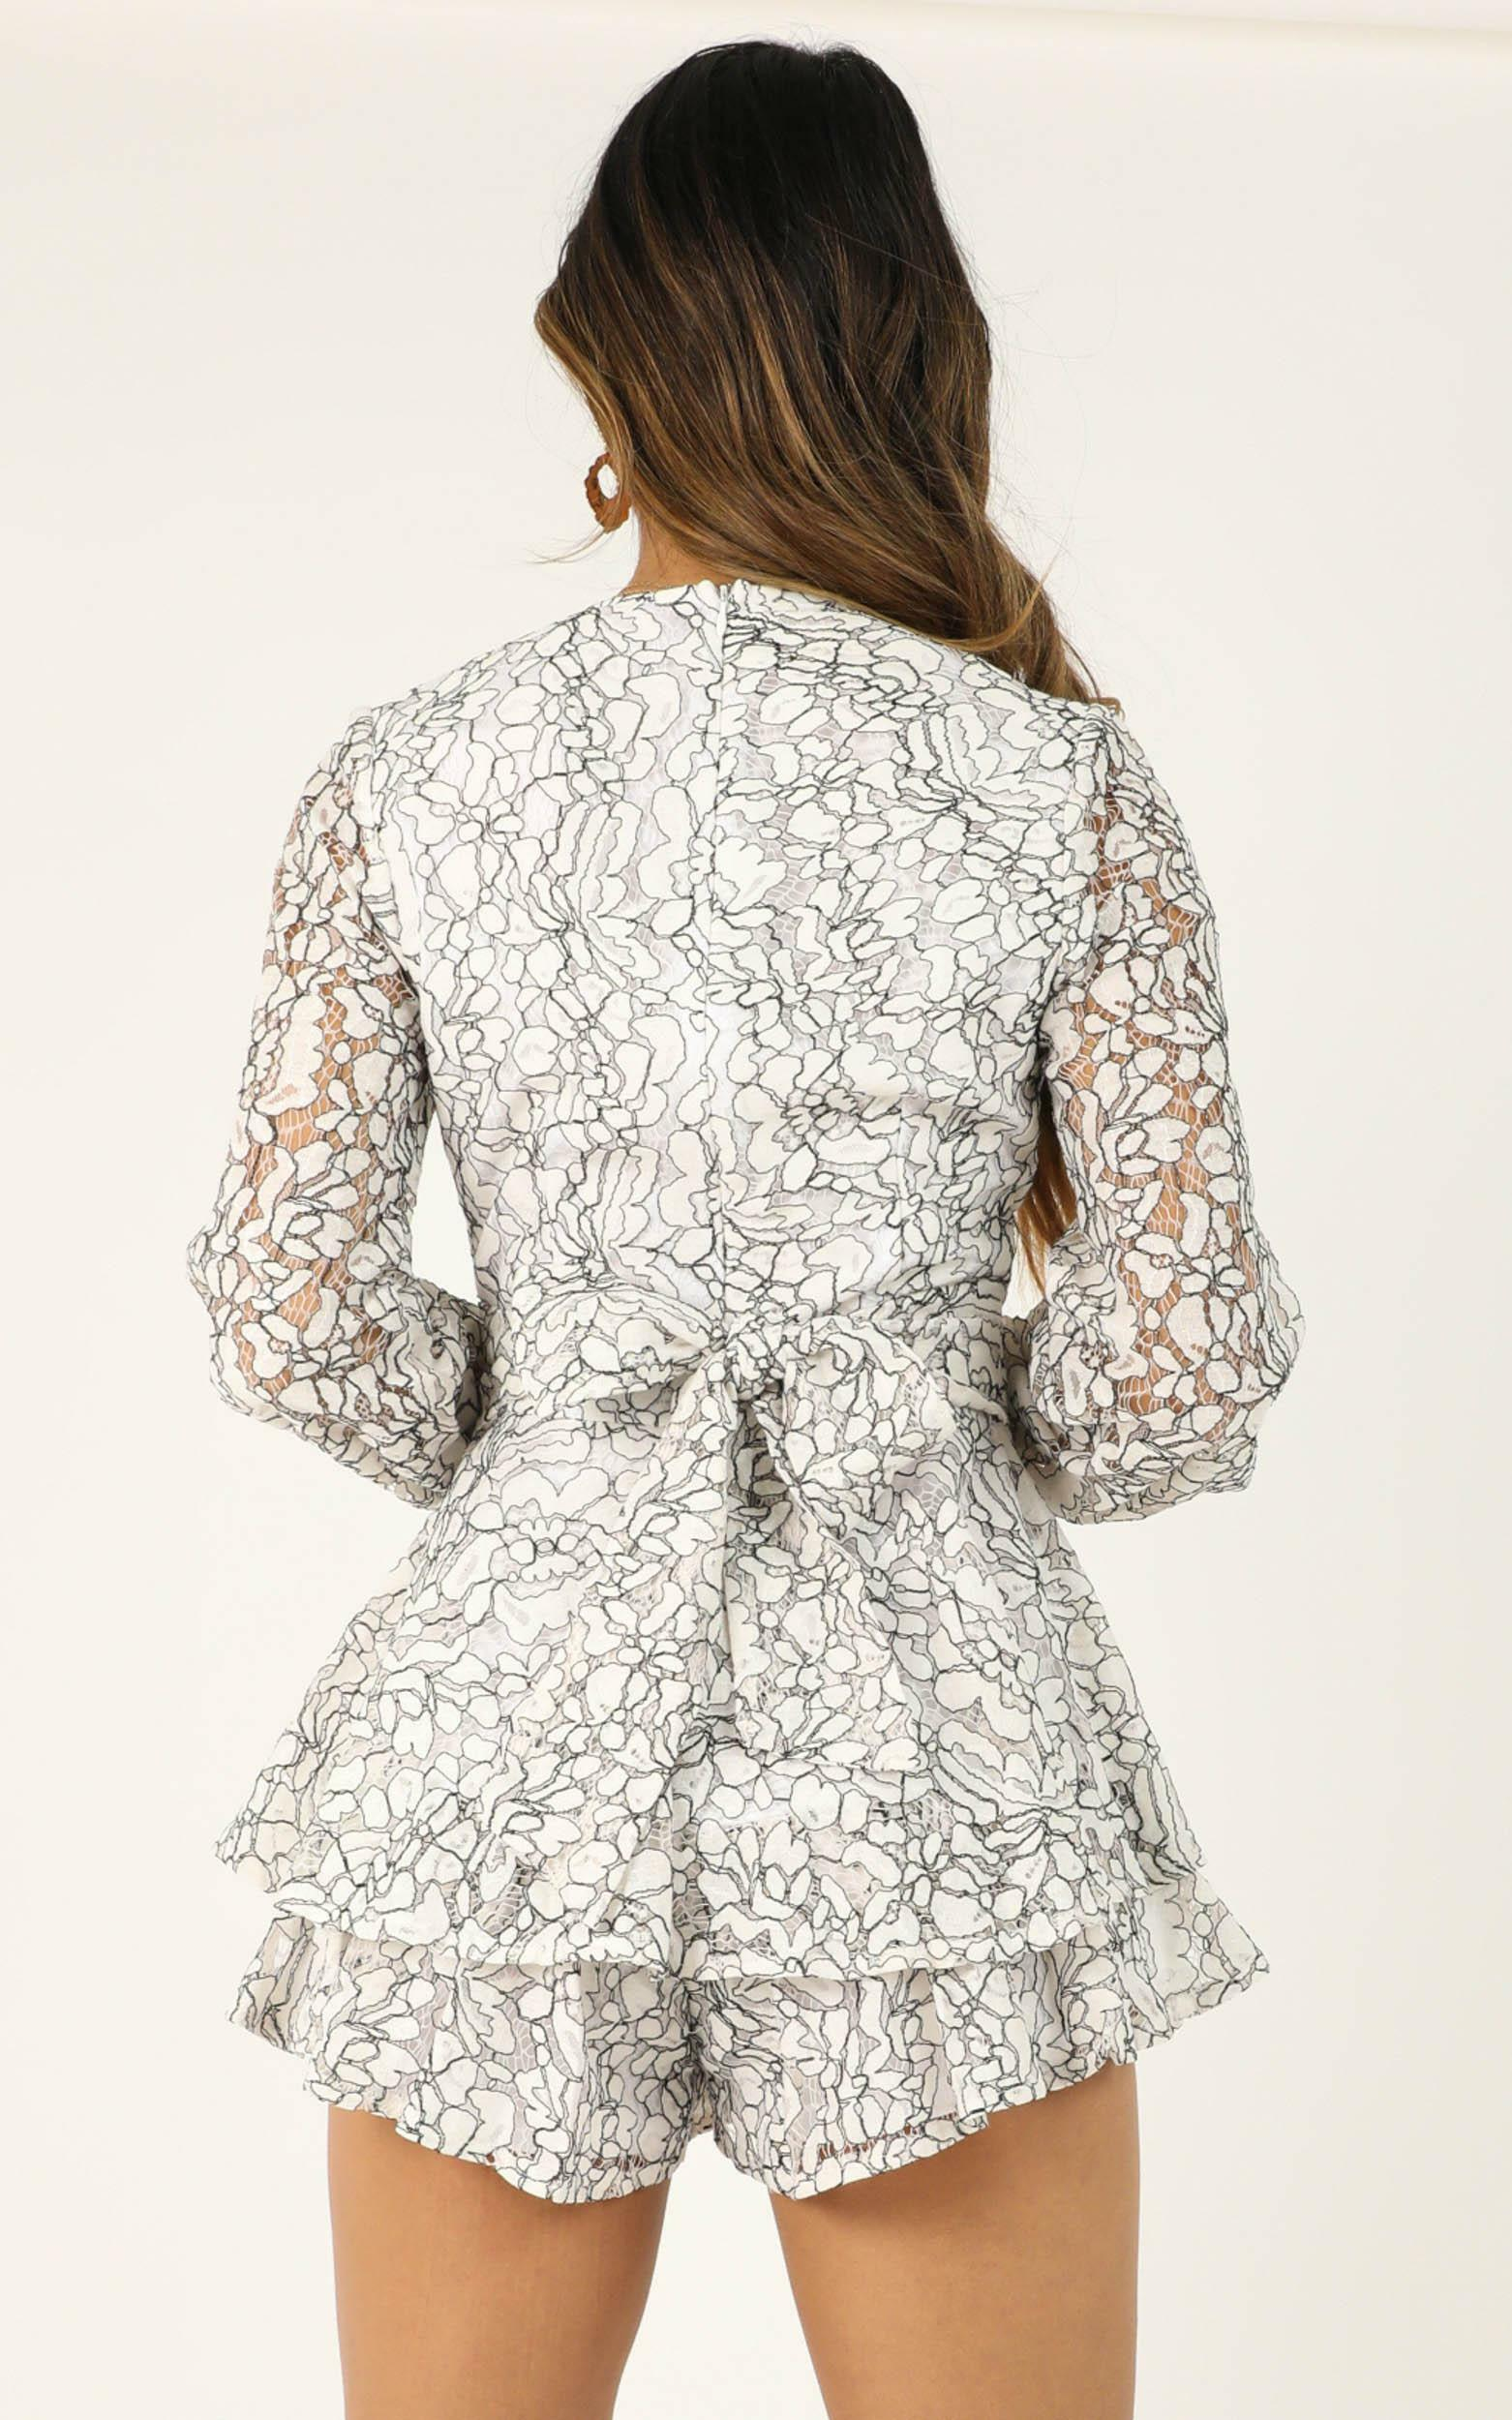 Communal Love Playsuit in white lace - 14 (XL), White, hi-res image number null